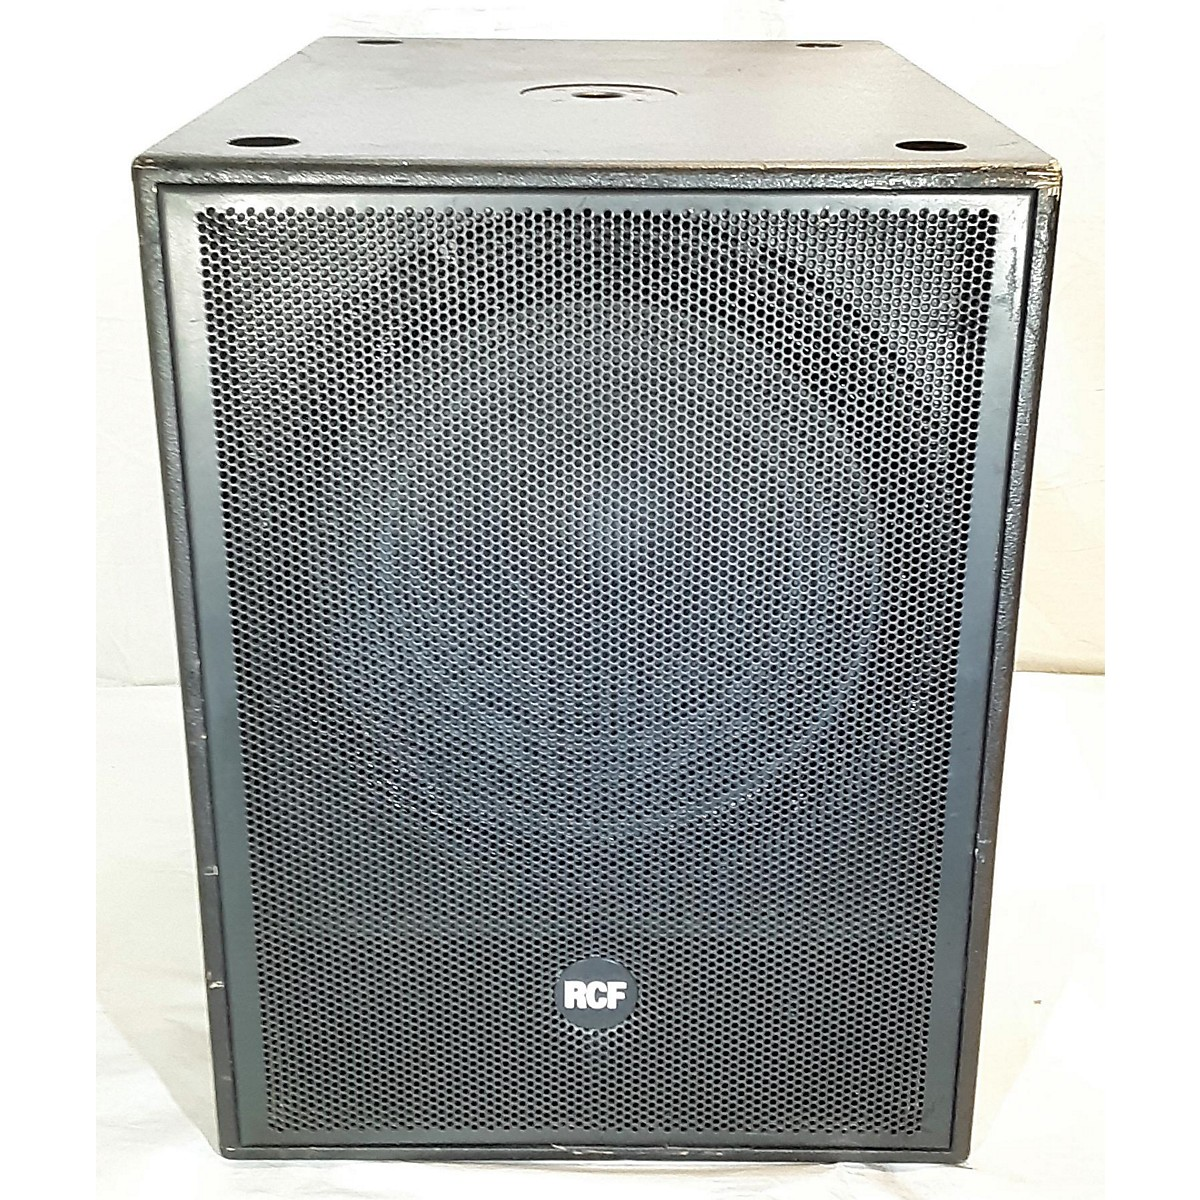 RCF 4PRO8003 AS Powered Subwoofer